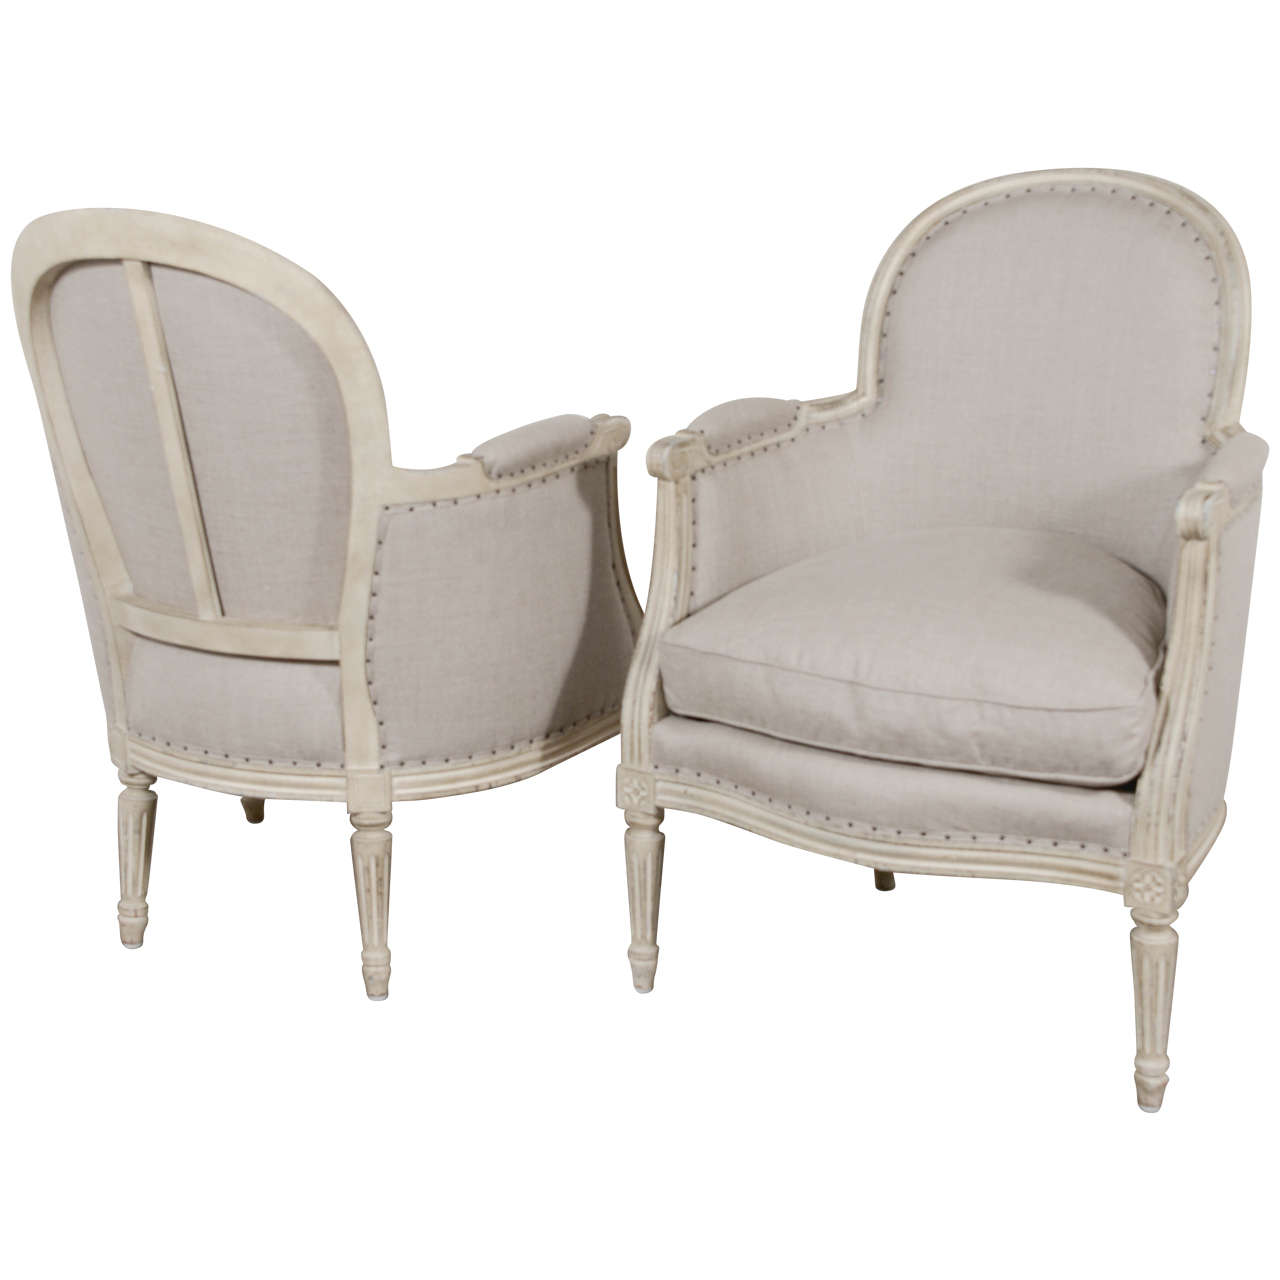 French Louis XVI 19th Century Chairs